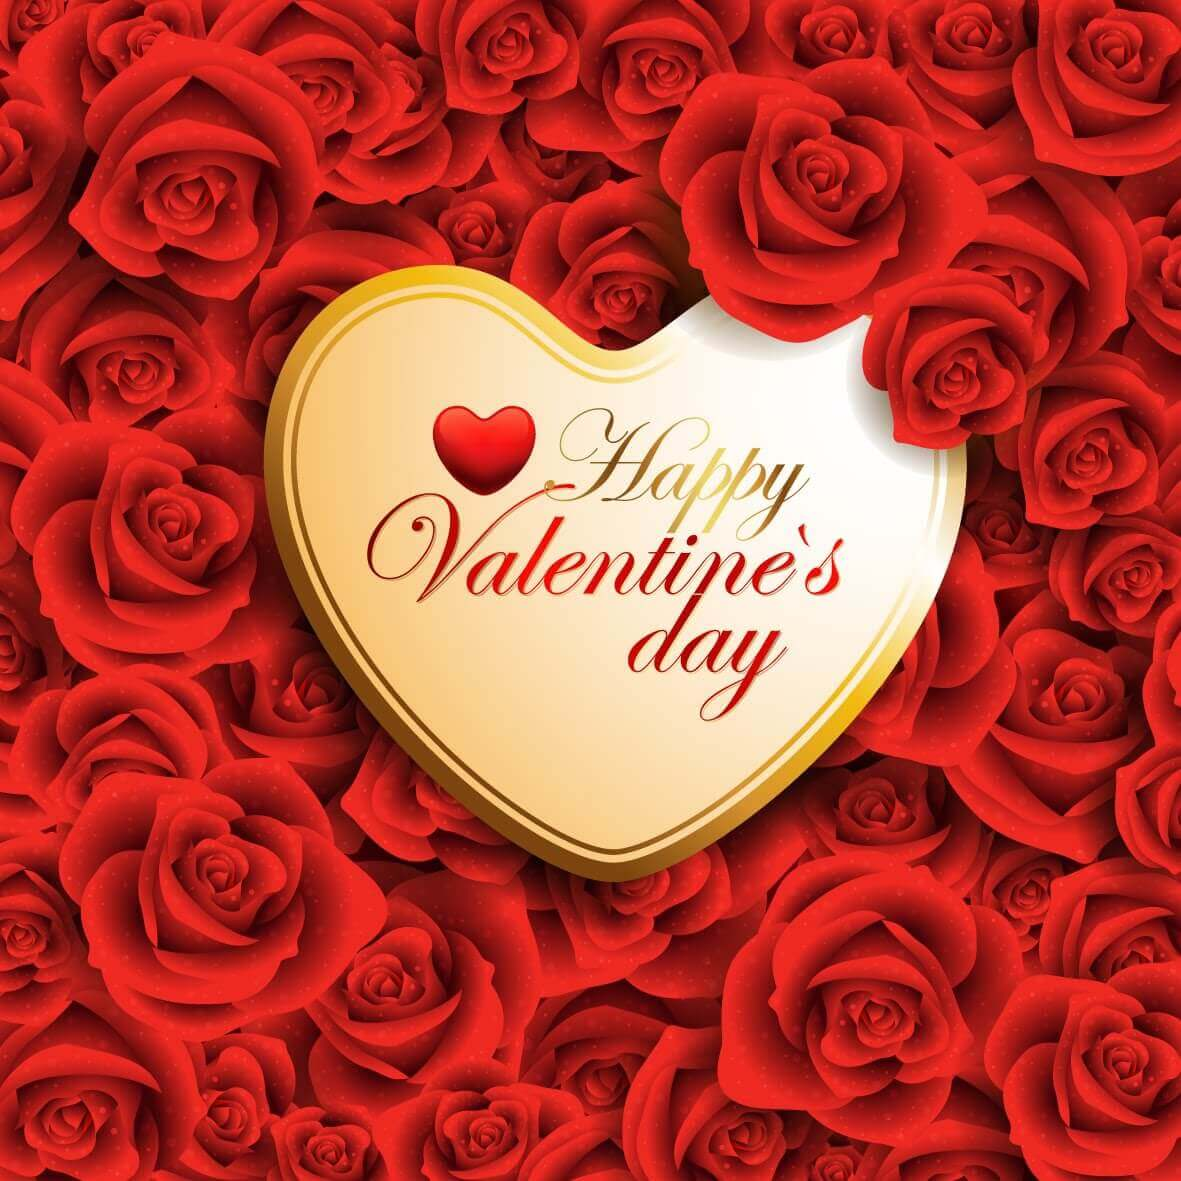 valentine's day images for facebook